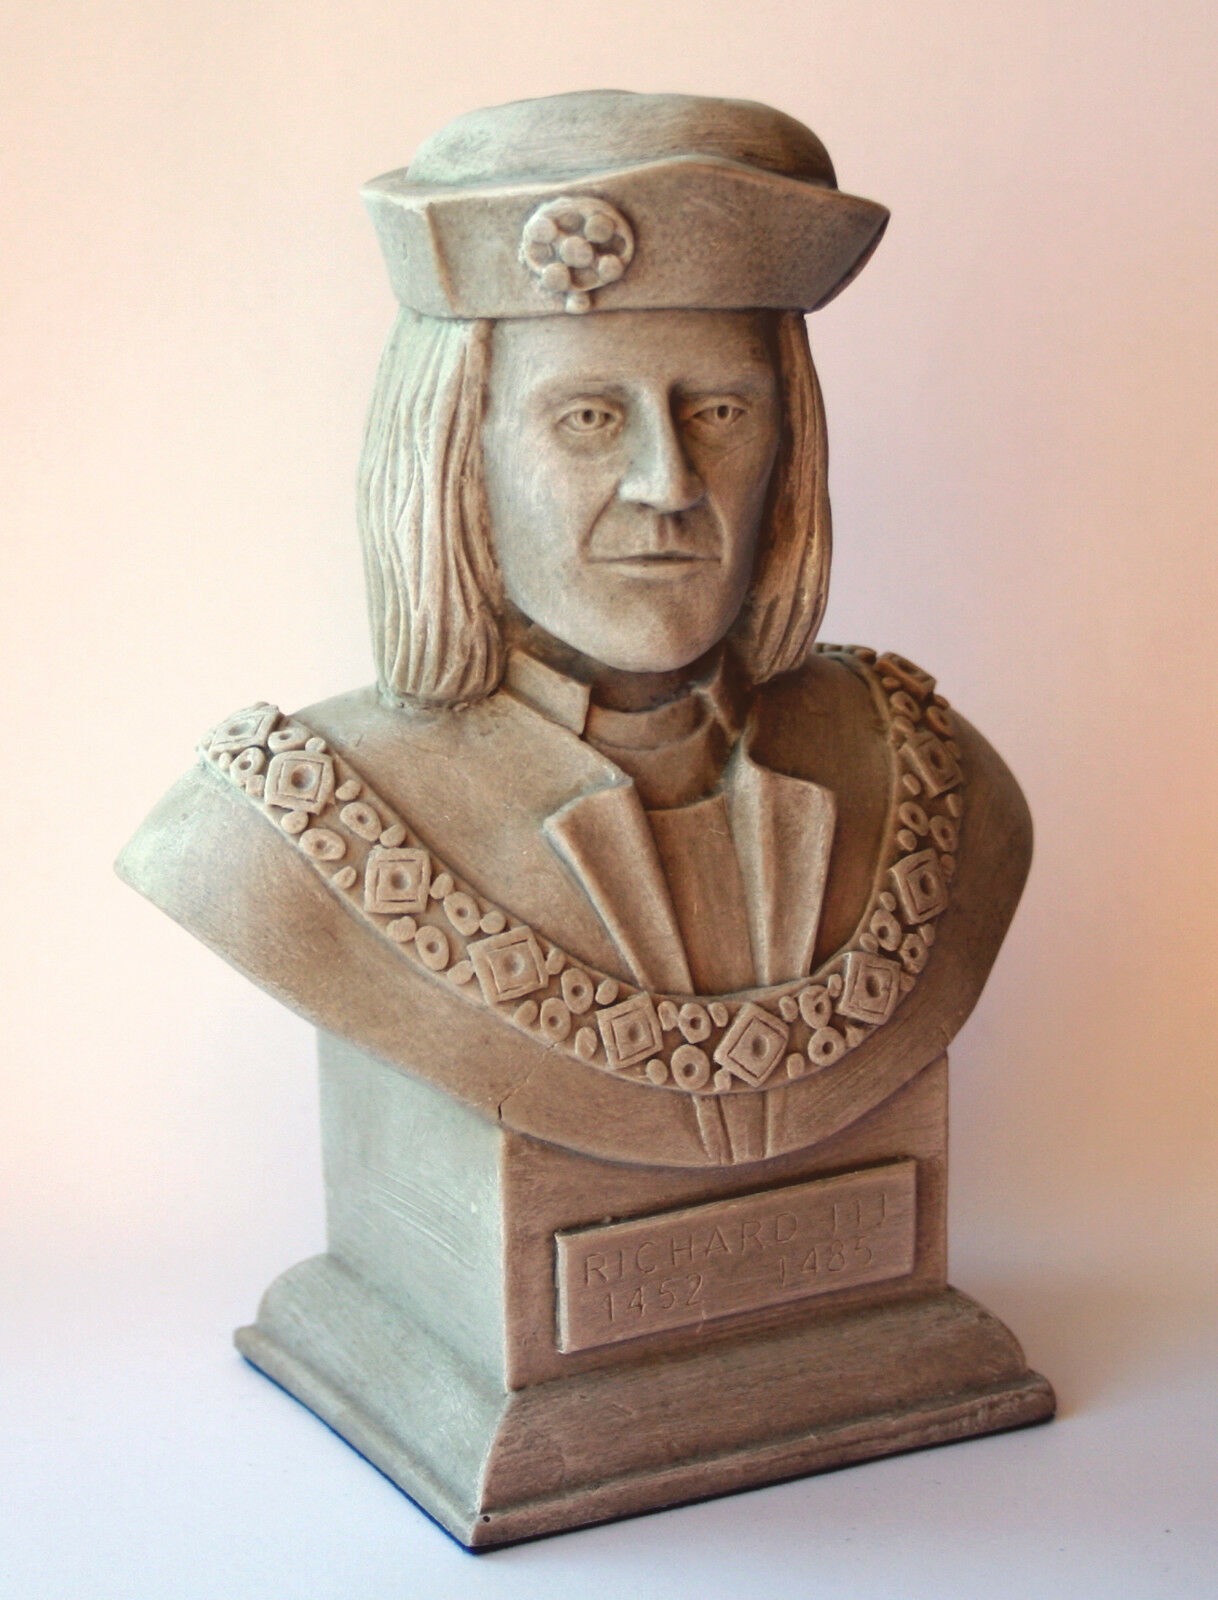 King Richard III Sculpture Bust Ornament Collectable Medieval Ricardian Gift UK